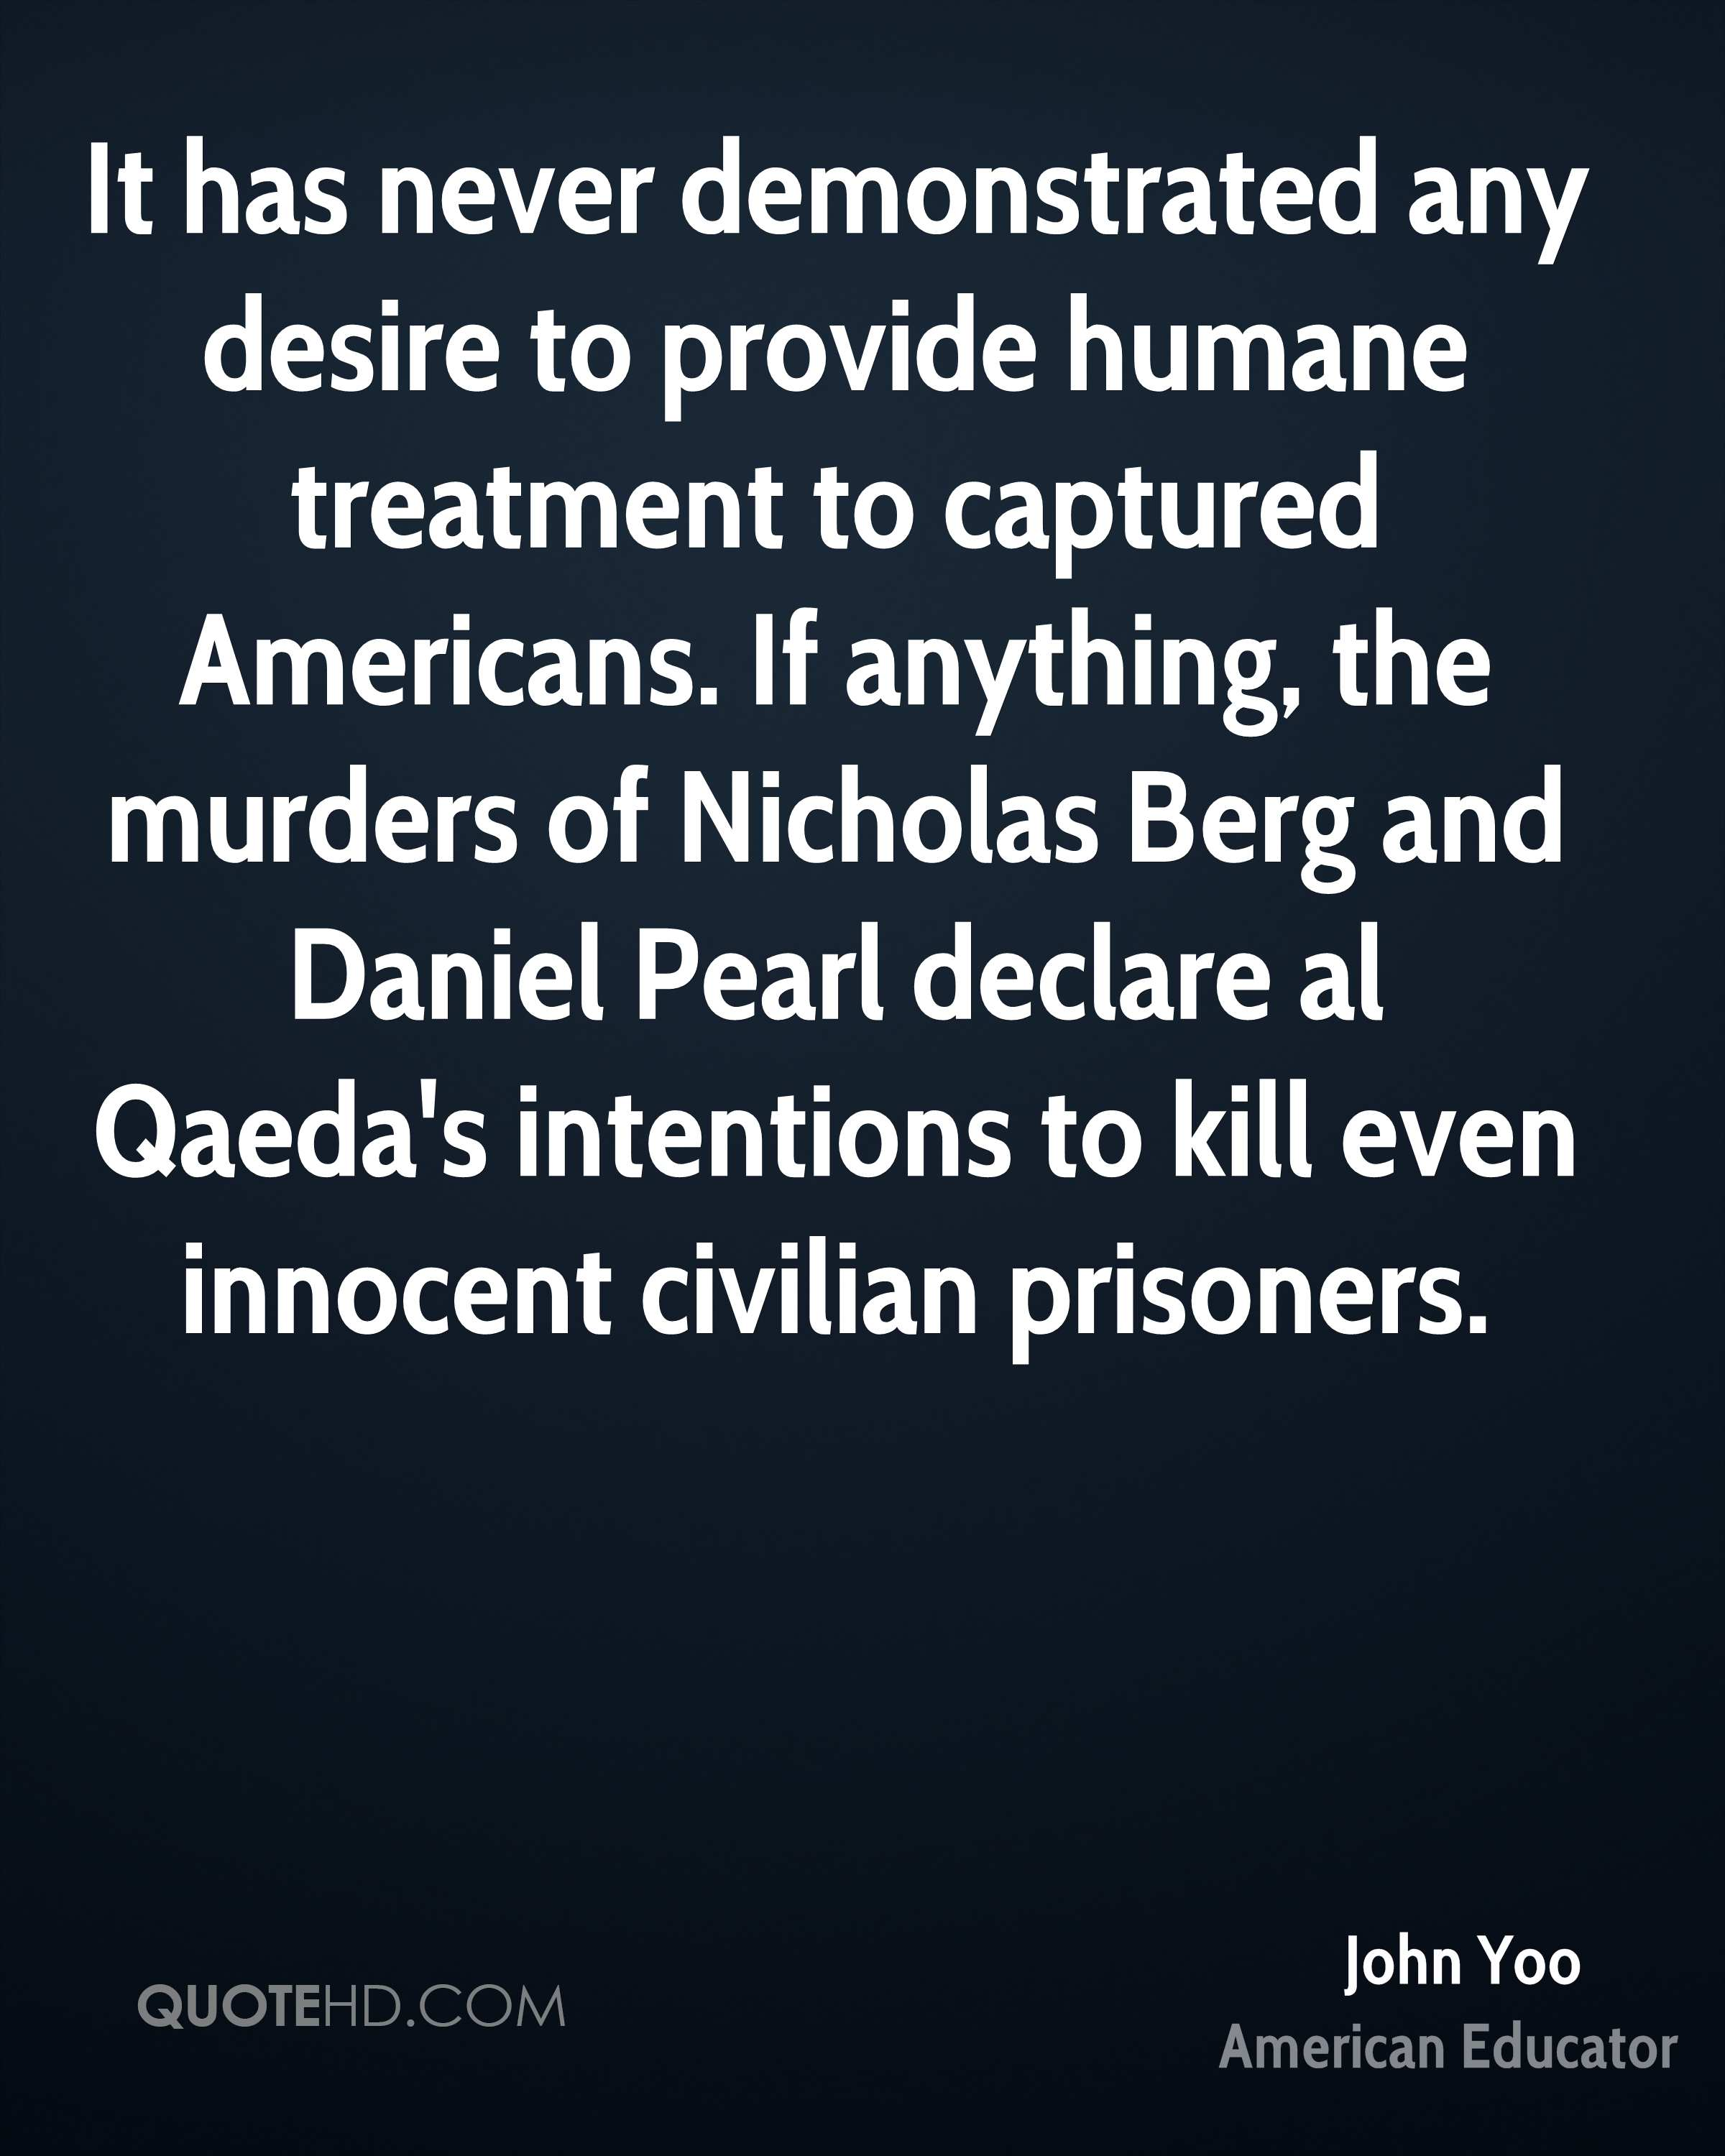 It has never demonstrated any desire to provide humane treatment to captured Americans. If anything, the murders of Nicholas Berg and Daniel Pearl declare al Qaeda's intentions to kill even innocent civilian prisoners.